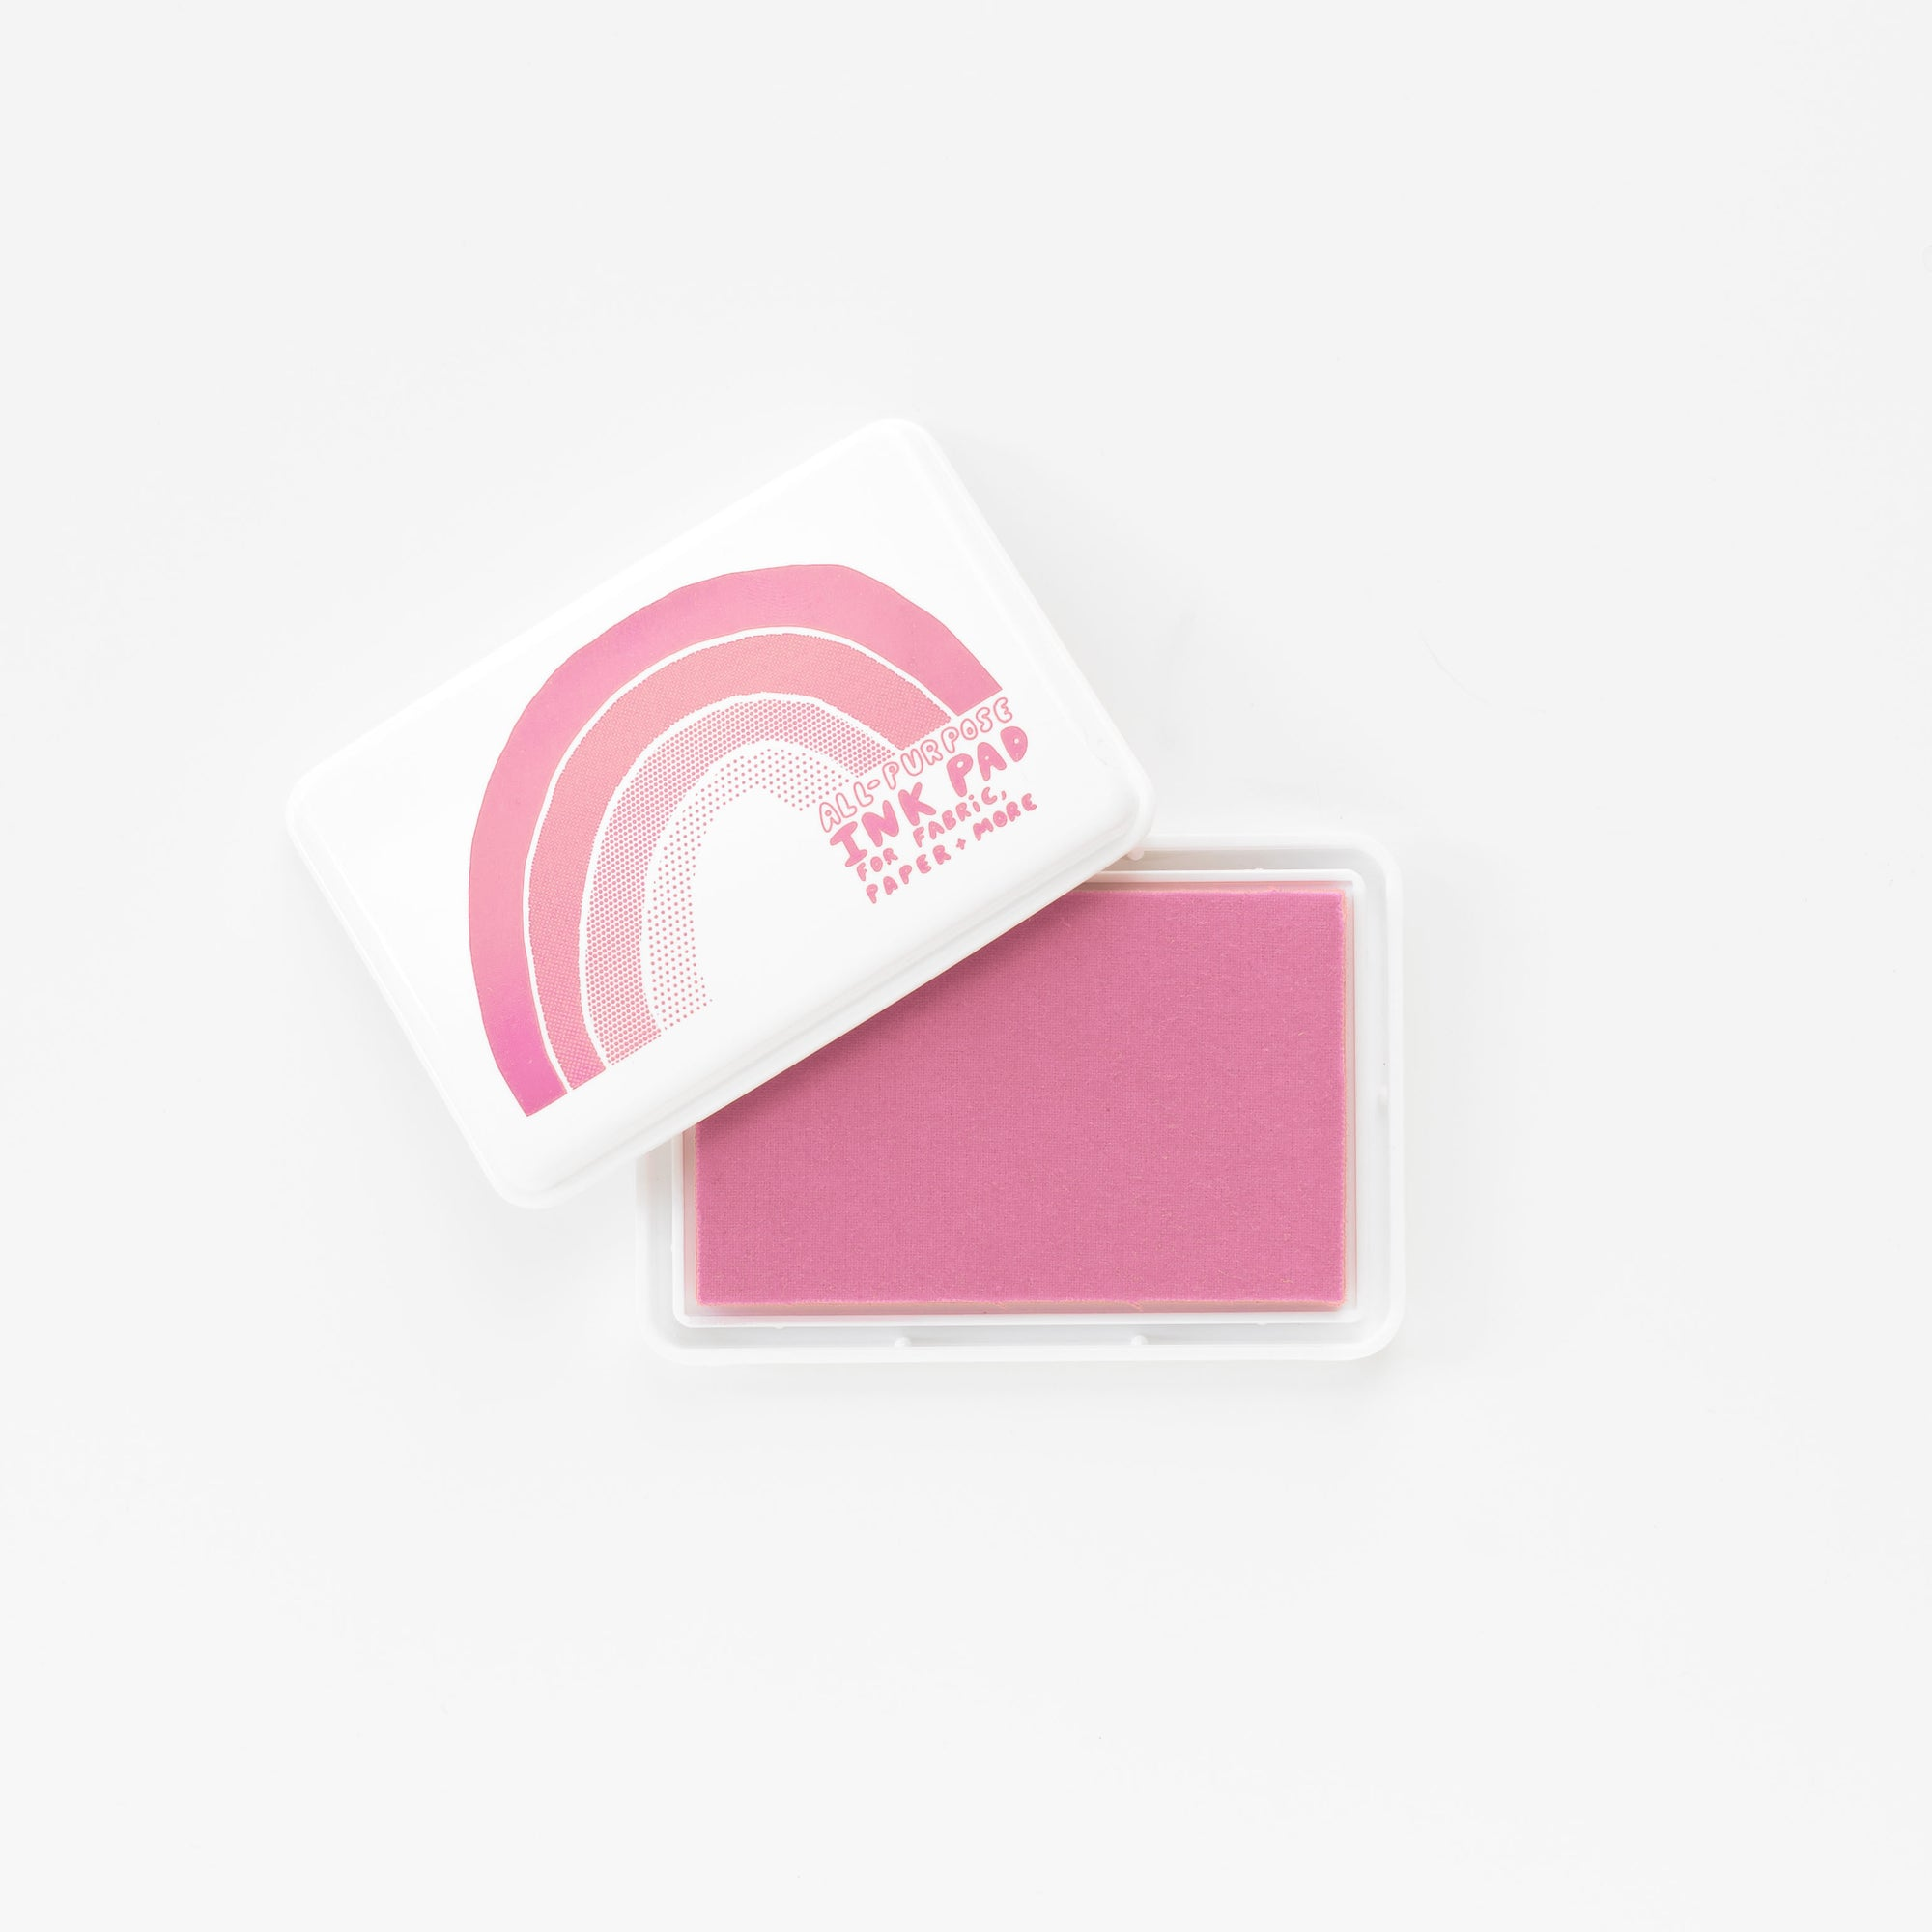 All-Surface Pink Ink Pad - For Paper, Fabric, and More